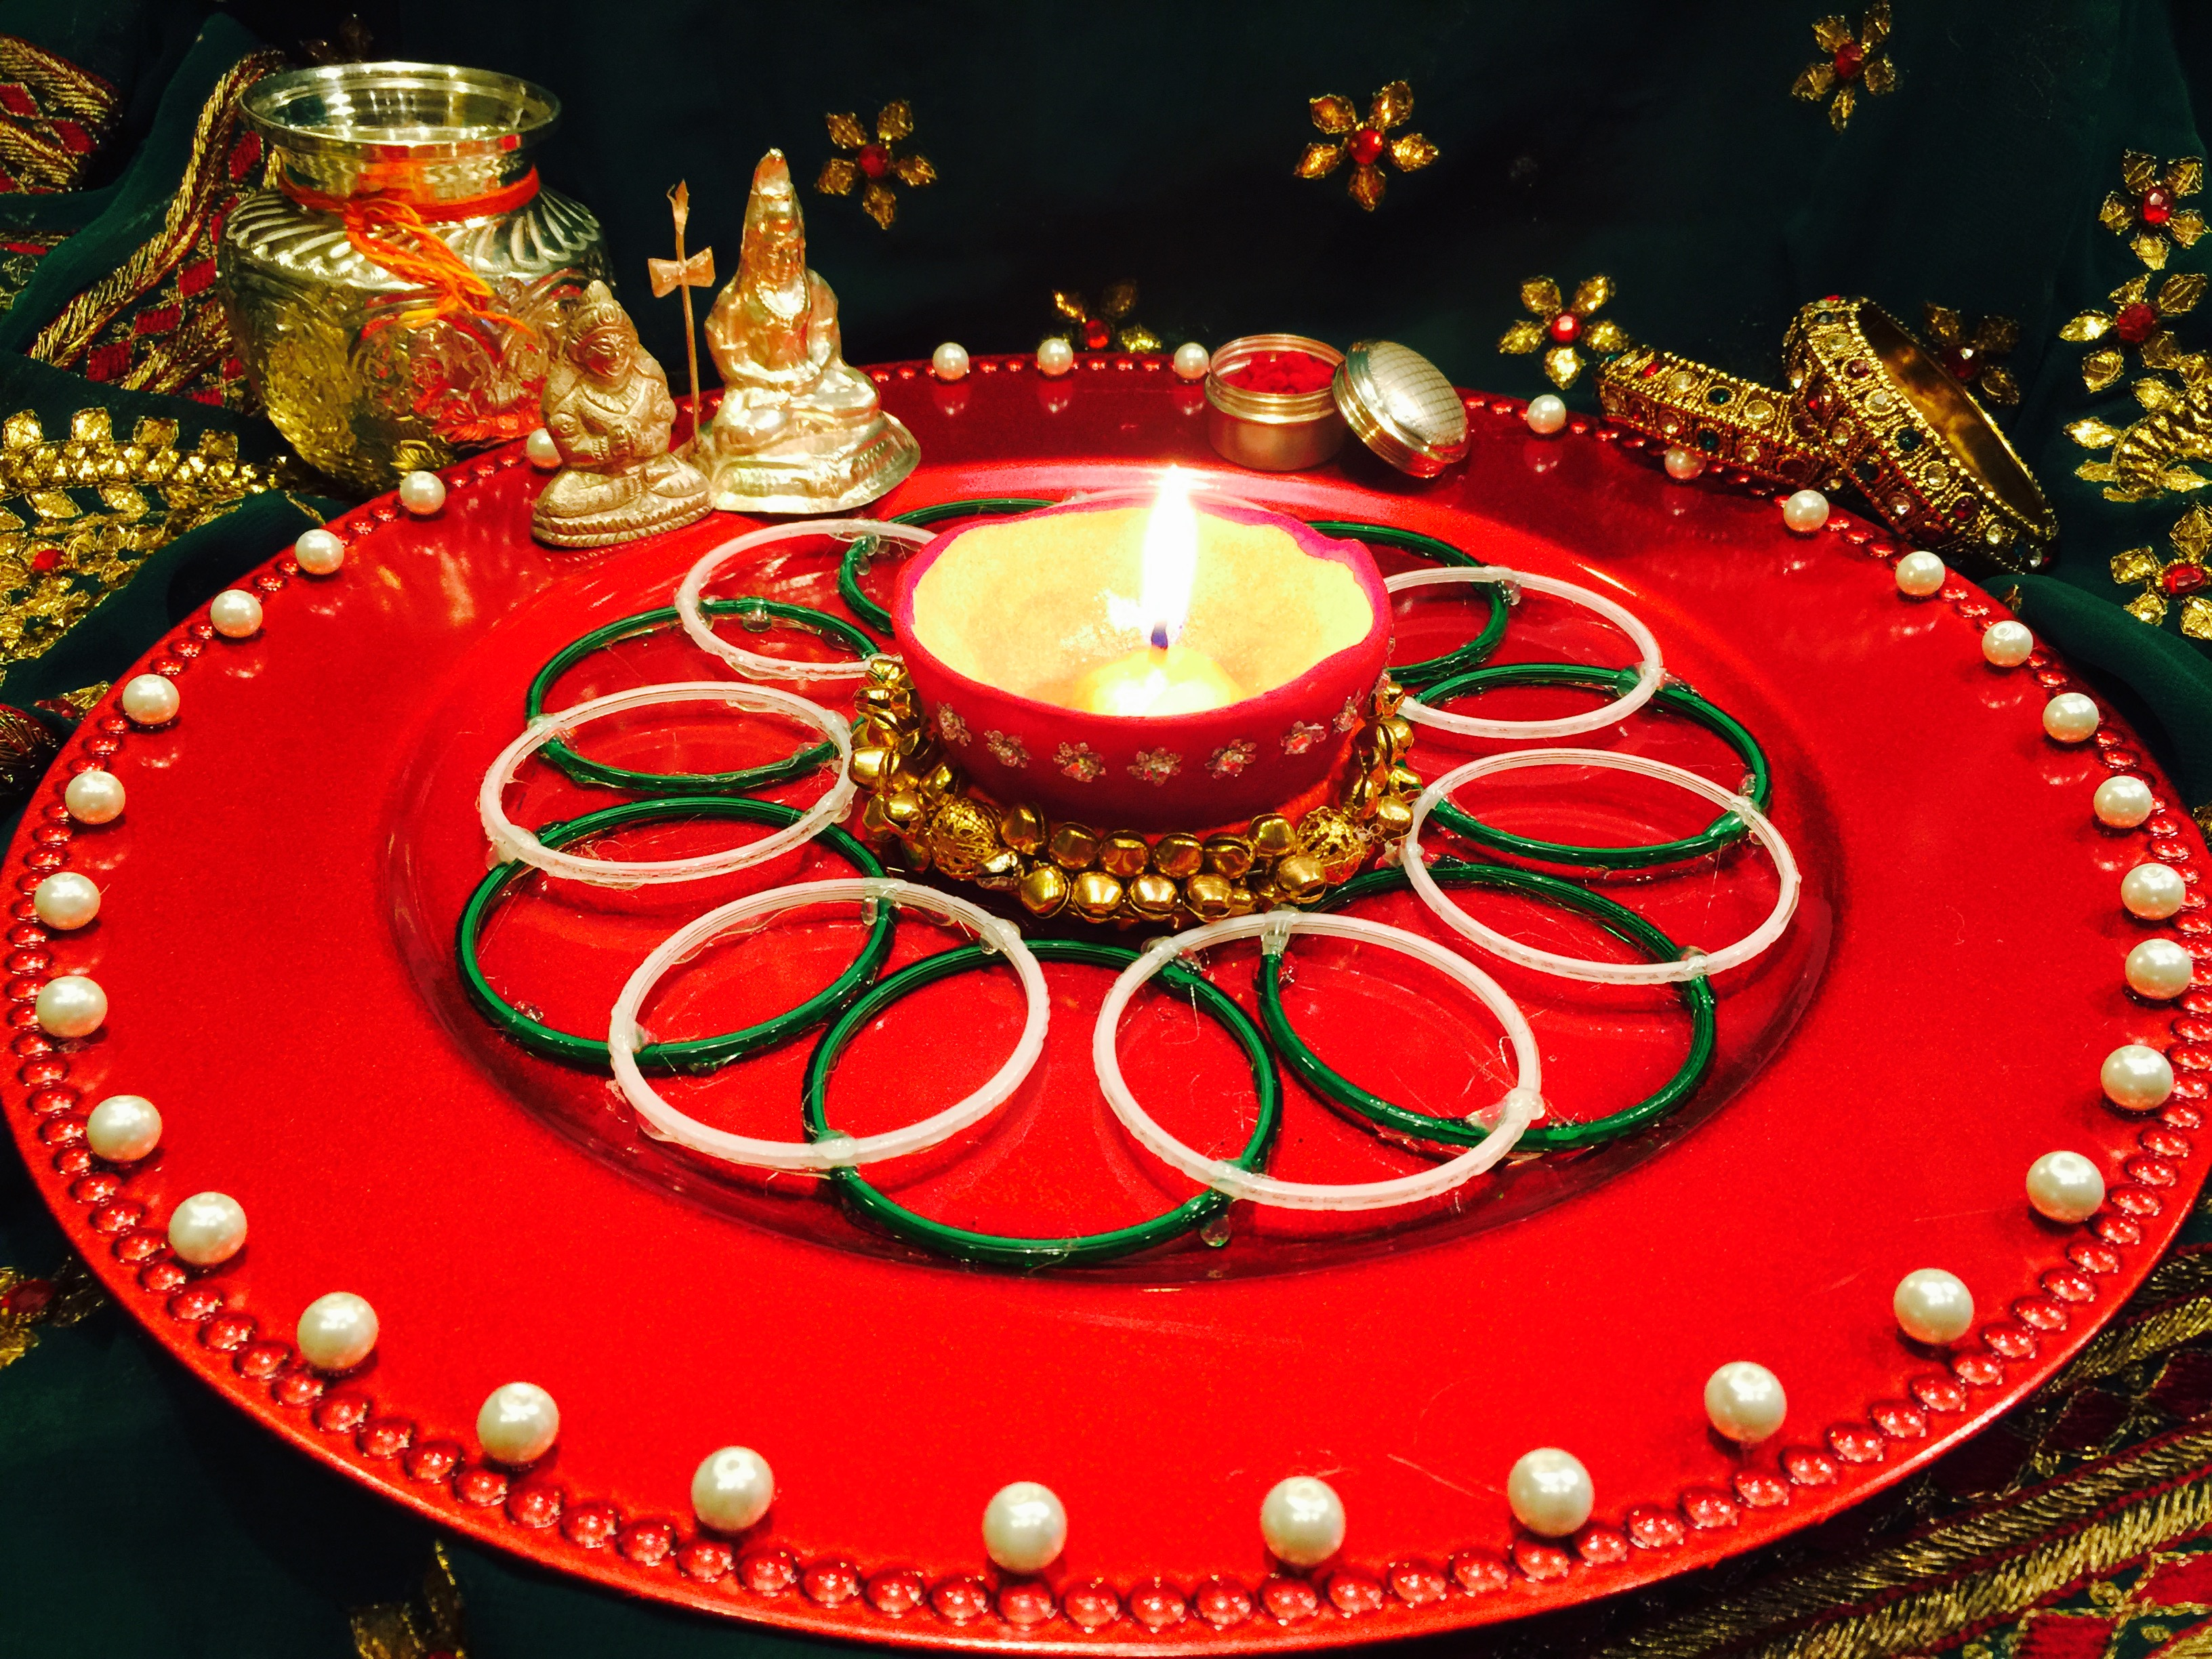 Make Karwa Chauth Ki Thali With Chooris Bindis Sindoor And Atte Ka Diya Food Fitness Beauty